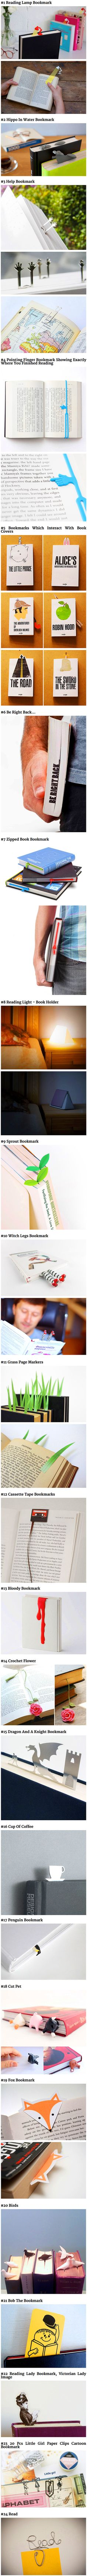 24 Ultra Creative Bookmarks That Geeks Would